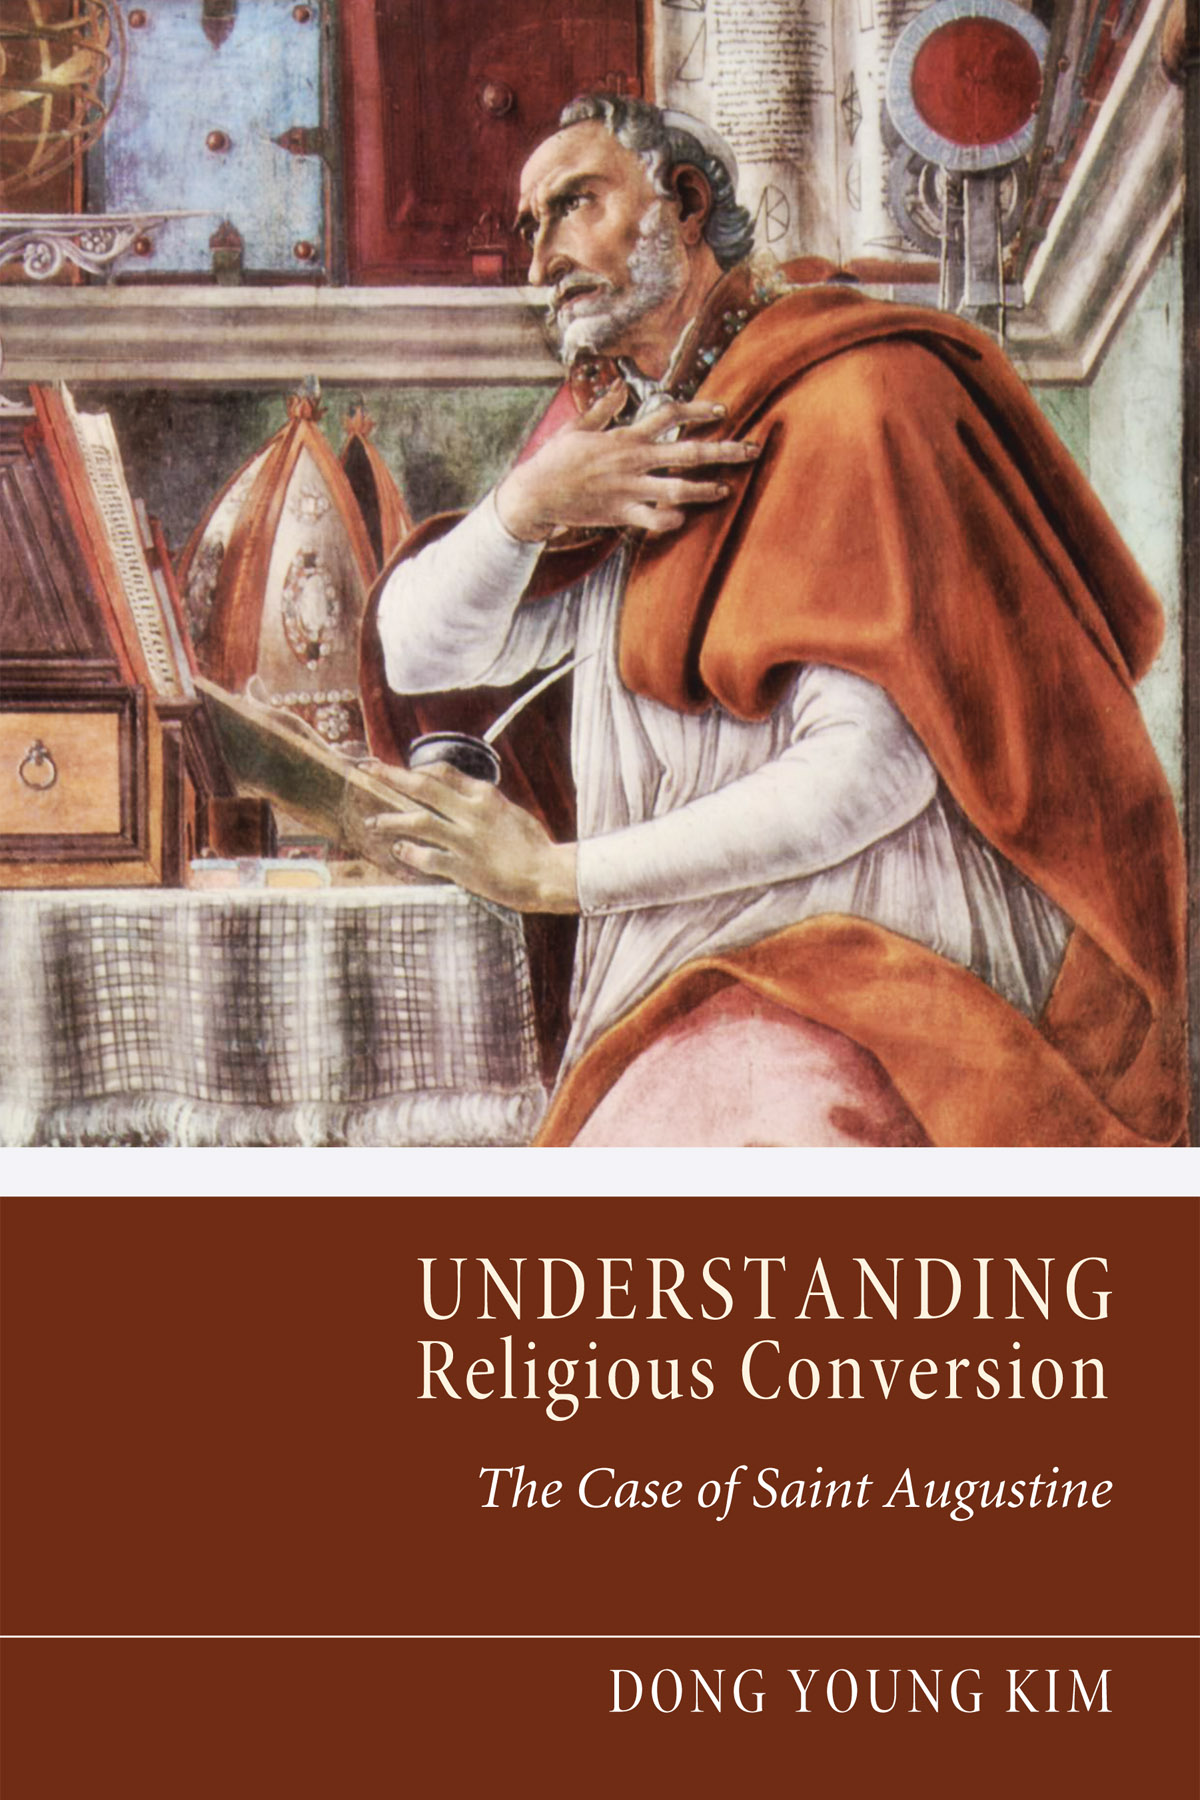 st augustines views on religious conversion The average baptistified view that all sin is equal and if we break one tiny part of the law we have broken all the law is out of sync with augustine 4 christians regularly commit small sins, great sins should be rare.